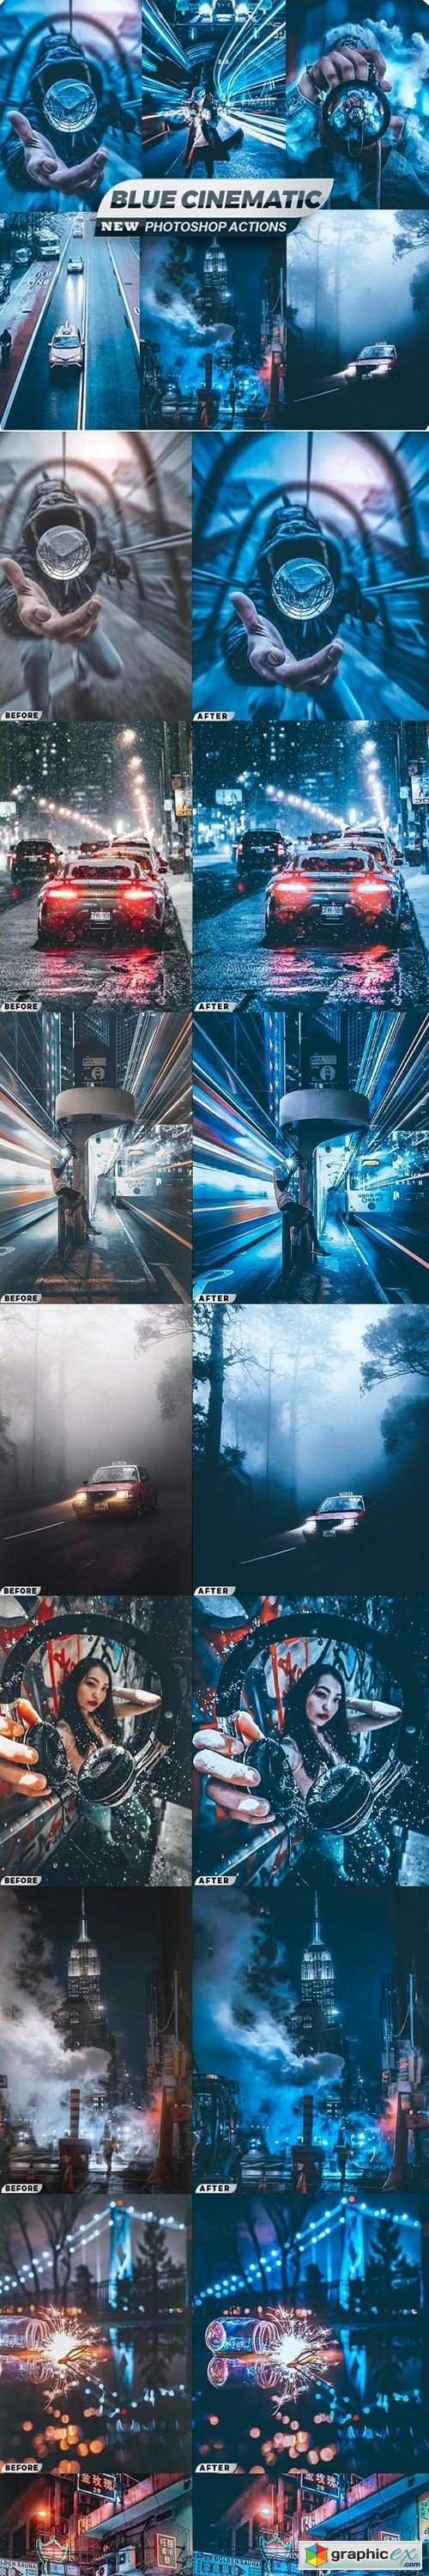 Blue Cinematic City Photoshop Actions